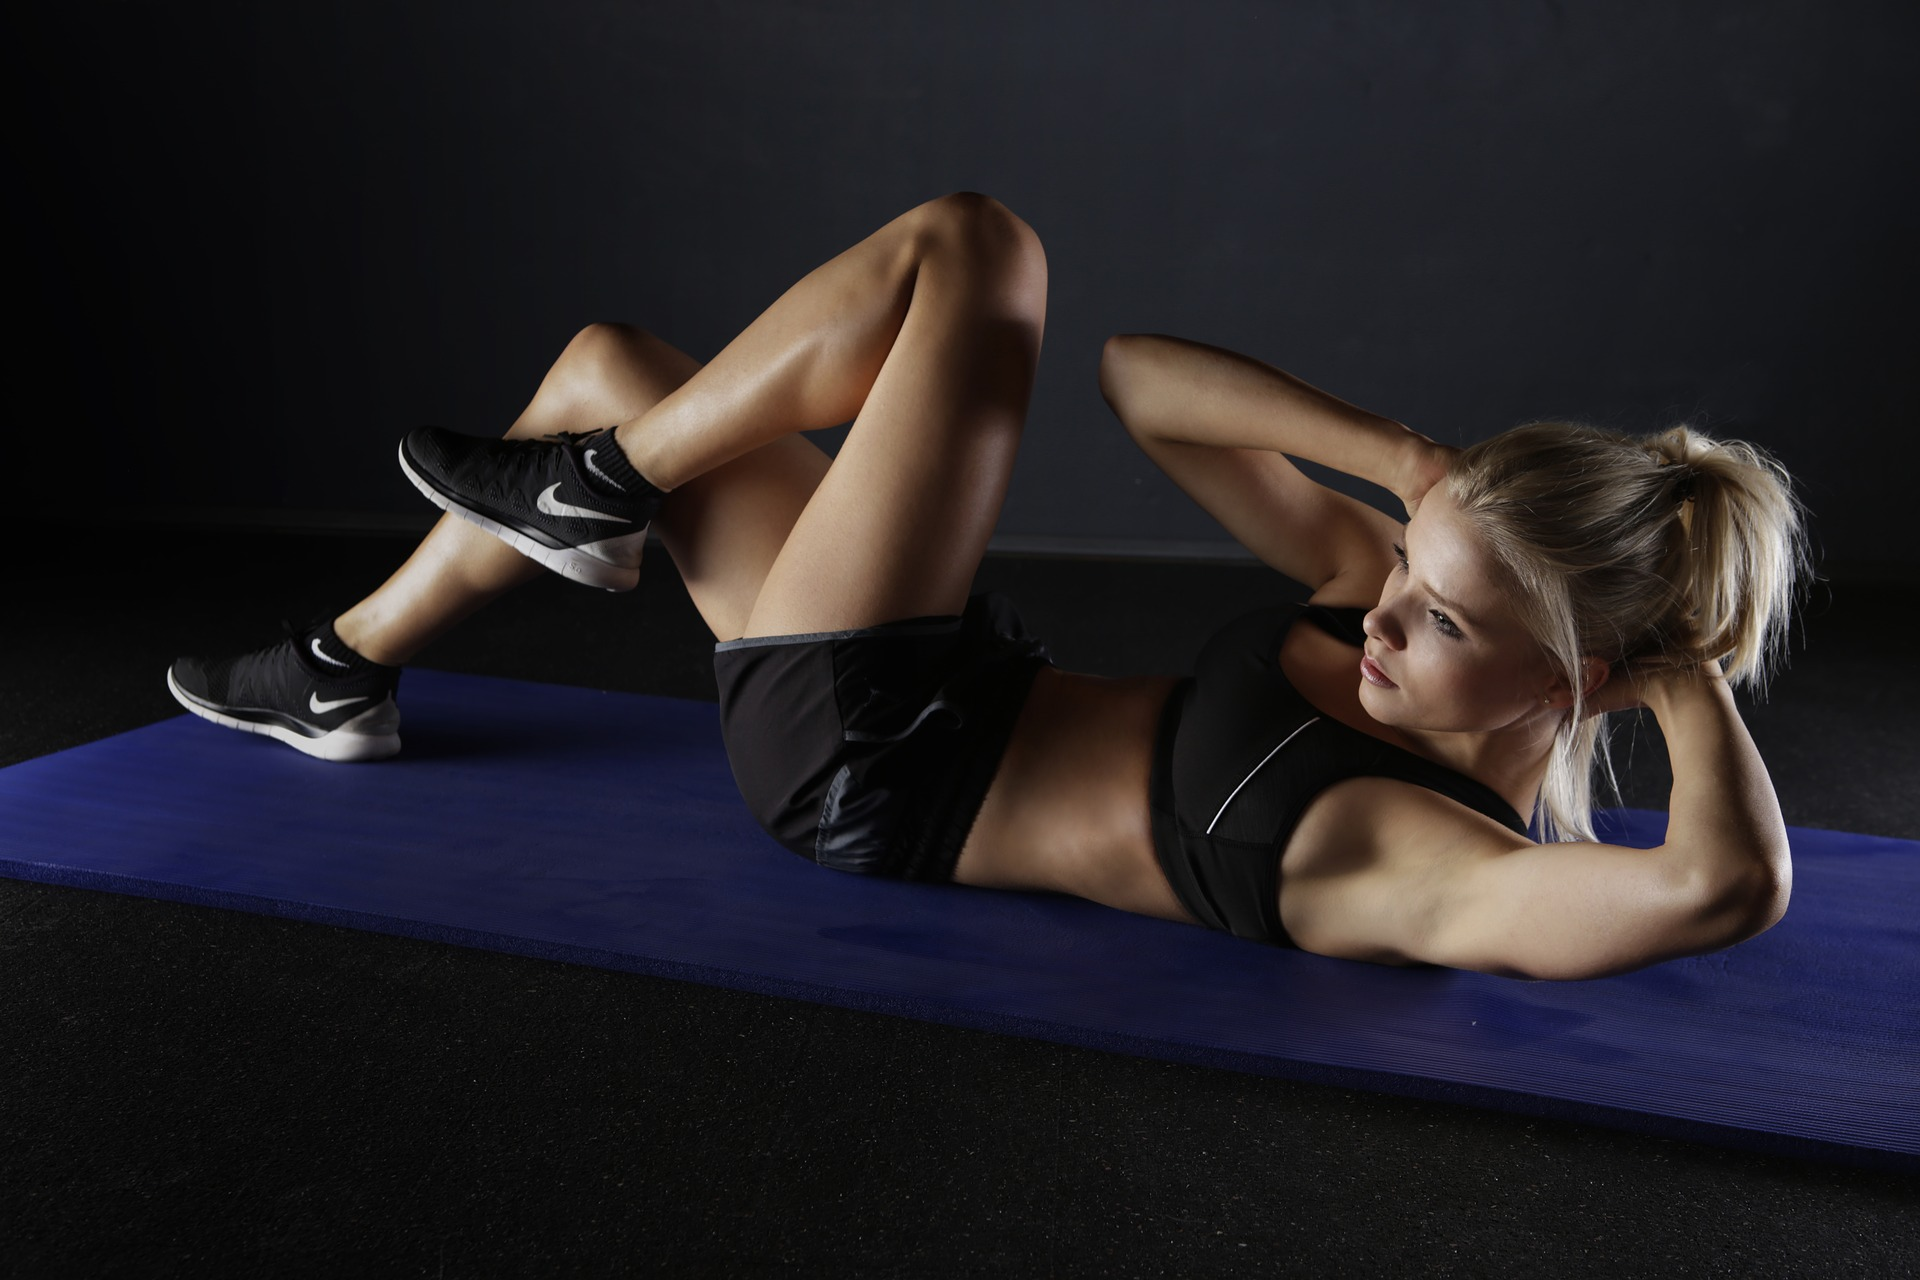 How Can I Improve My Exercise Positions